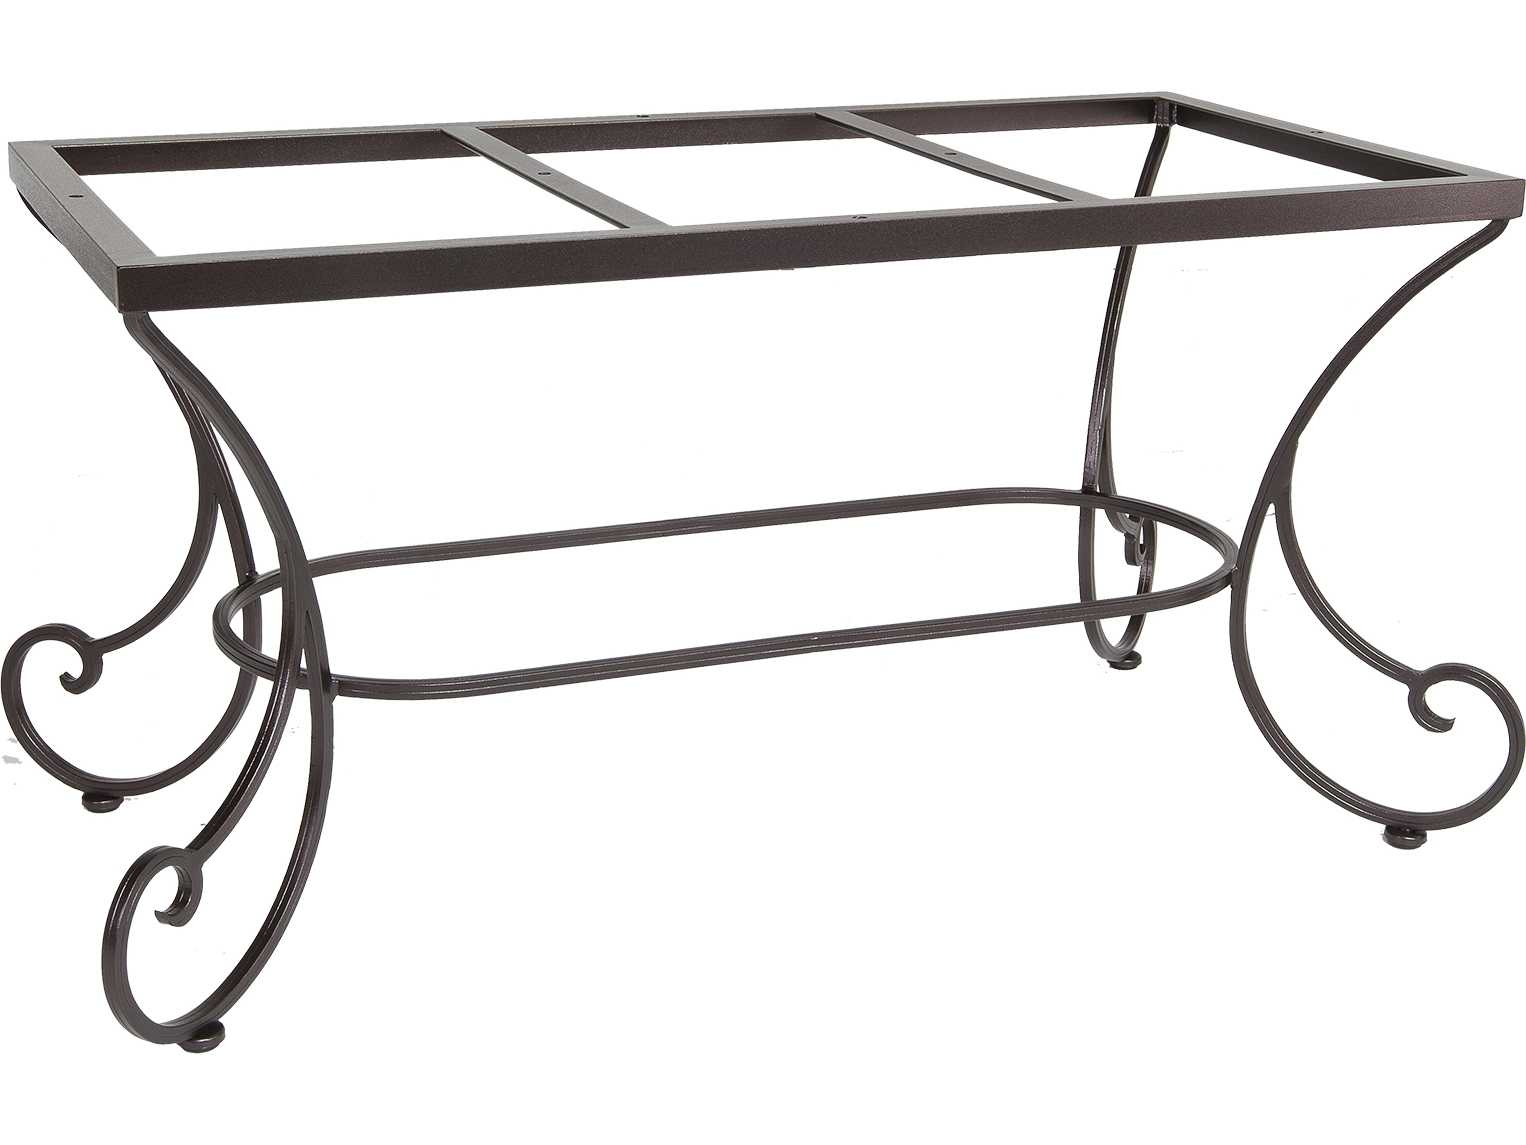 Ow lee bellini wrought iron dining table base 41 dt07 for Outdoor table bases wrought iron